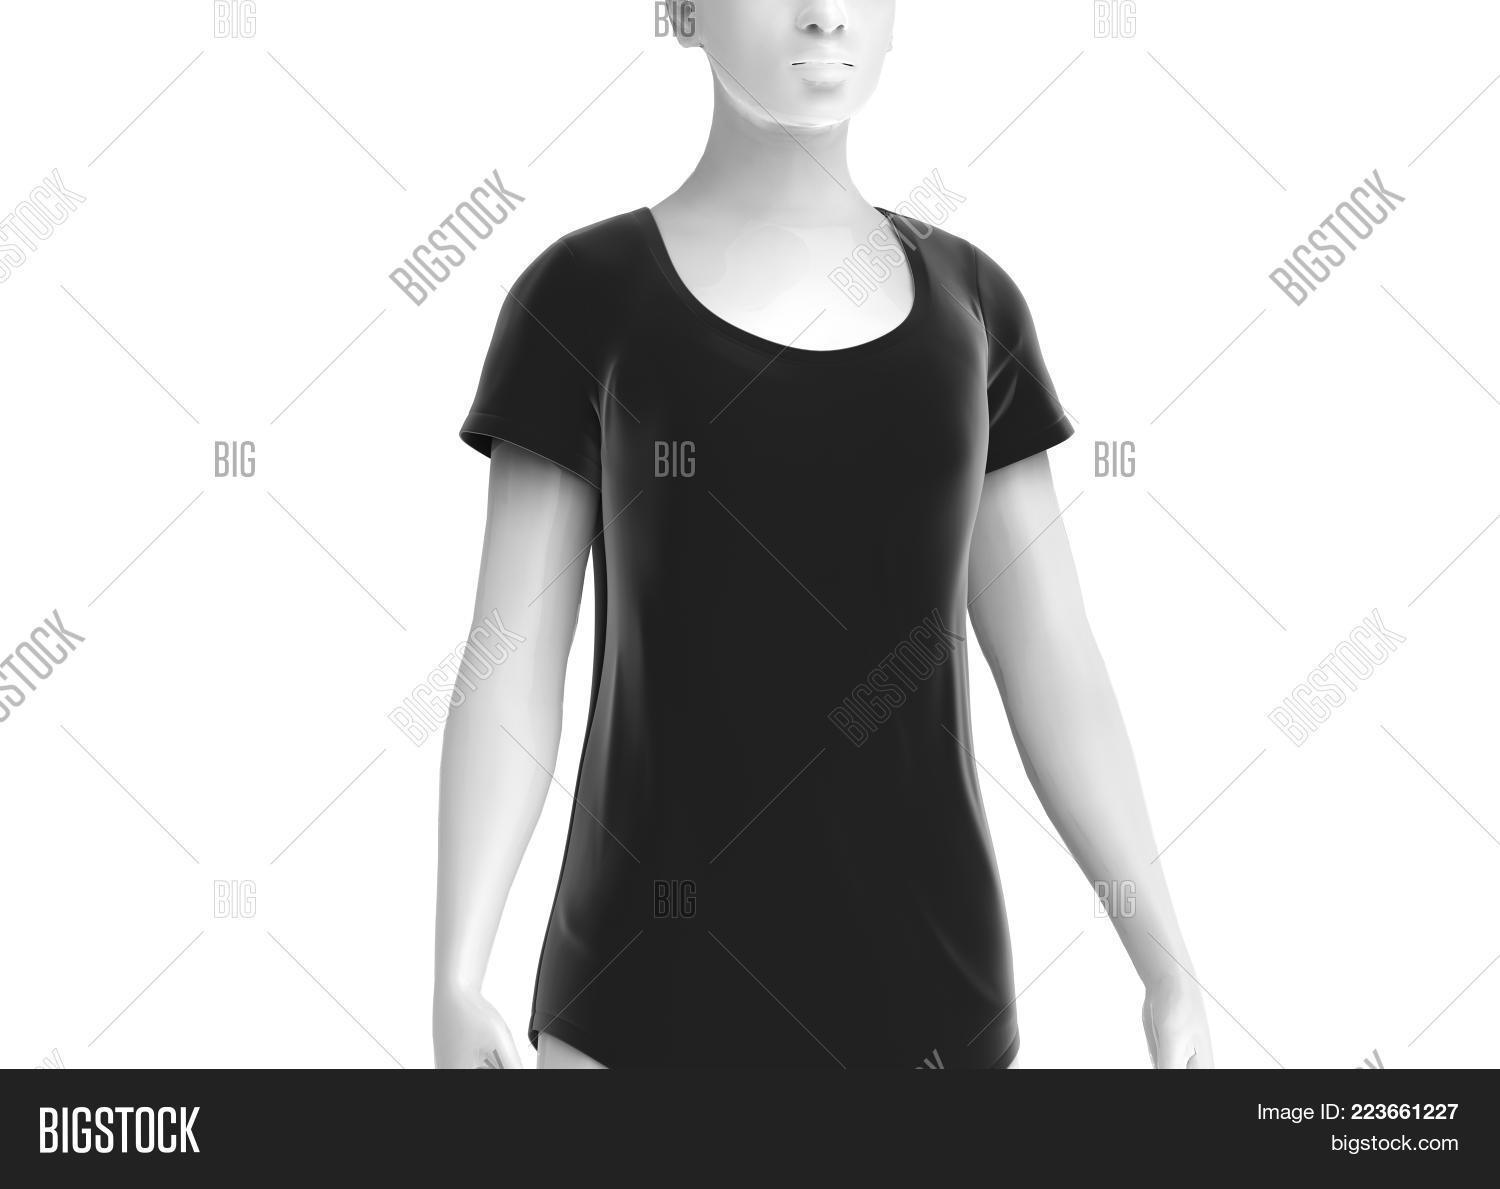 Scoop Neck Shirt Image & Photo (Free Trial) | Bigstock